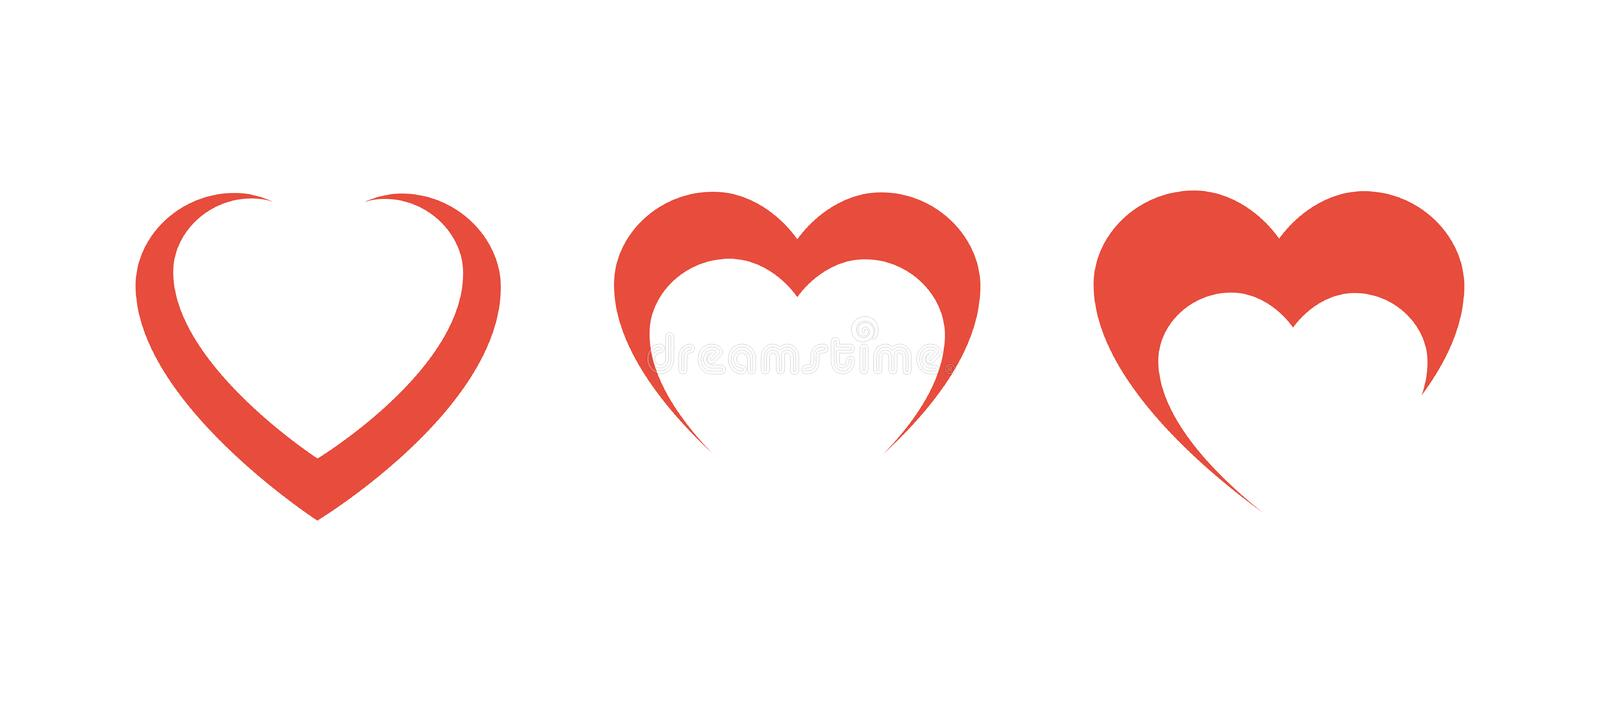 Three Red Hearts in row on blank background vector illustration